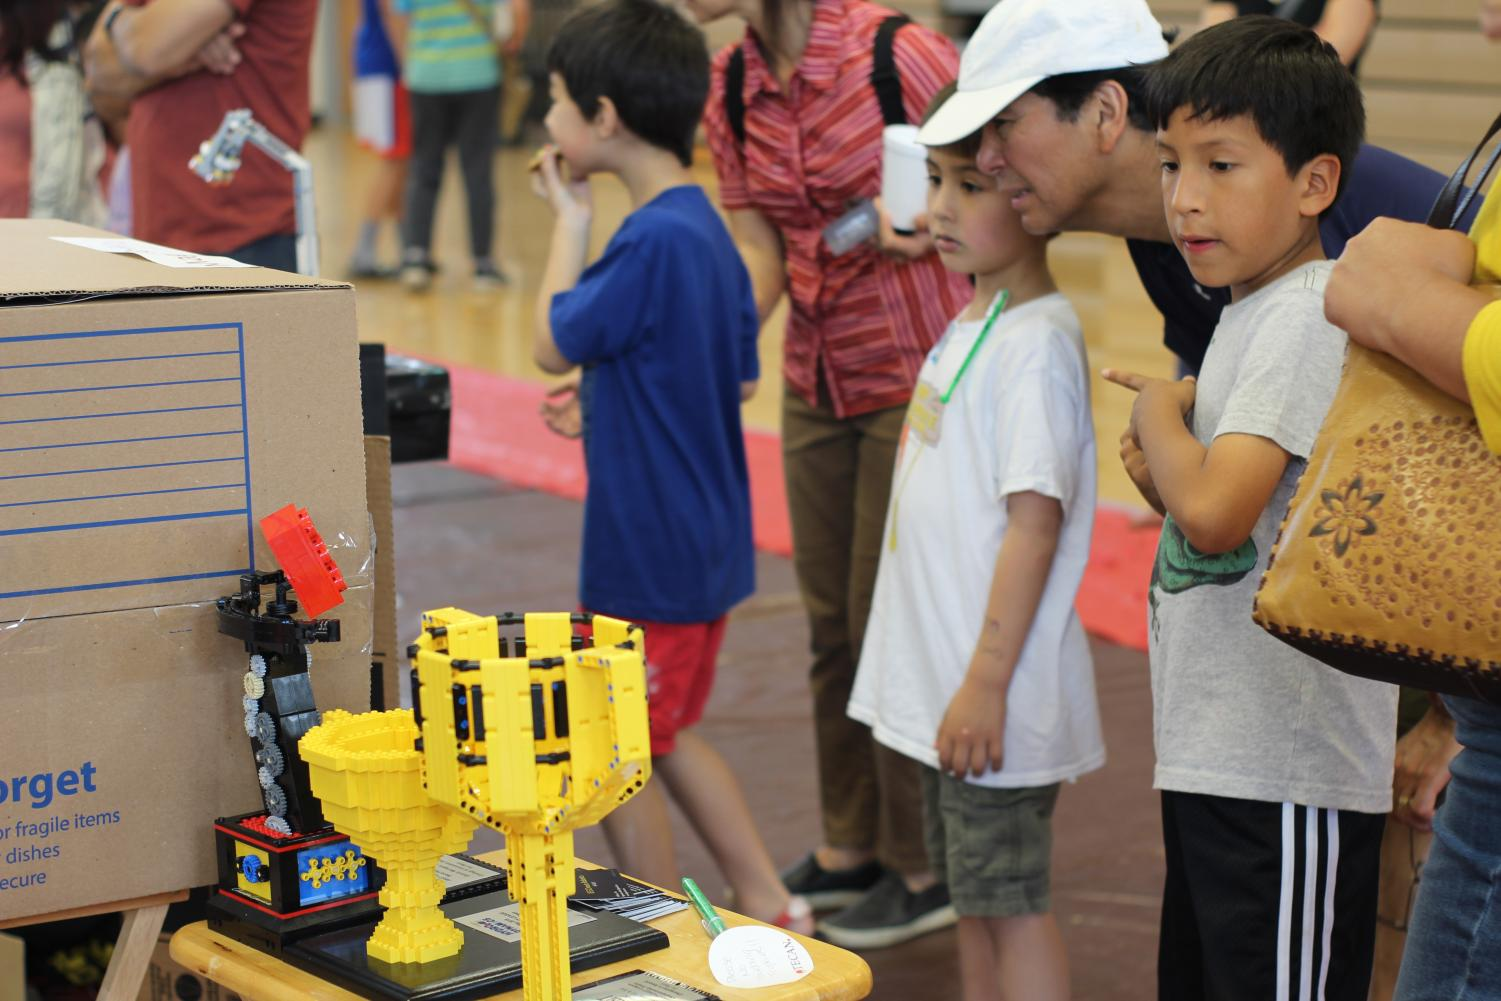 A+father+and+his+children%2C+both+in+elementary+school+observe+the+contraptions+built+by+the+multiple+FTC+%28First+Technology+Challenge%29+teams+present+at+Techstrav+2019.